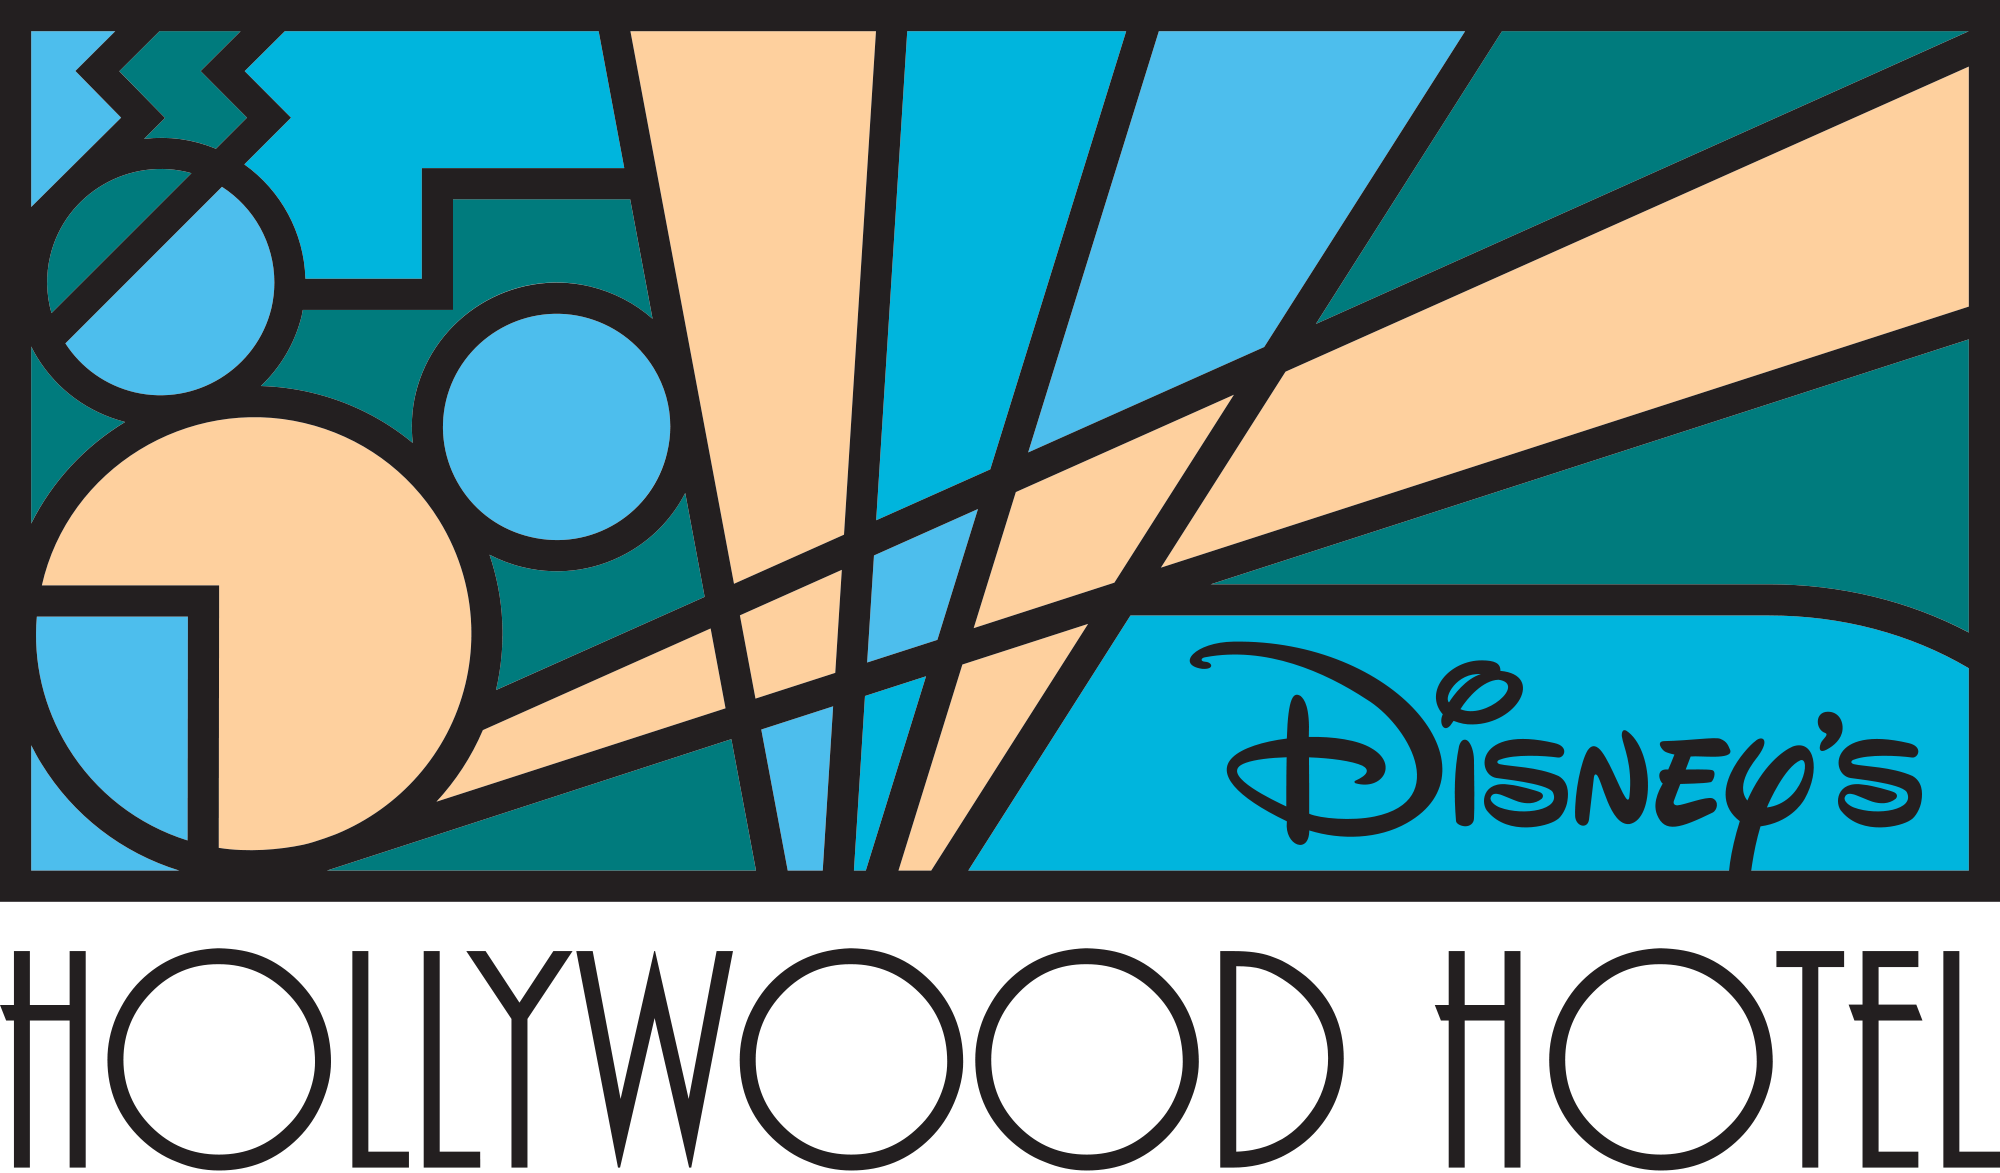 Disney S Hollywood Hotel